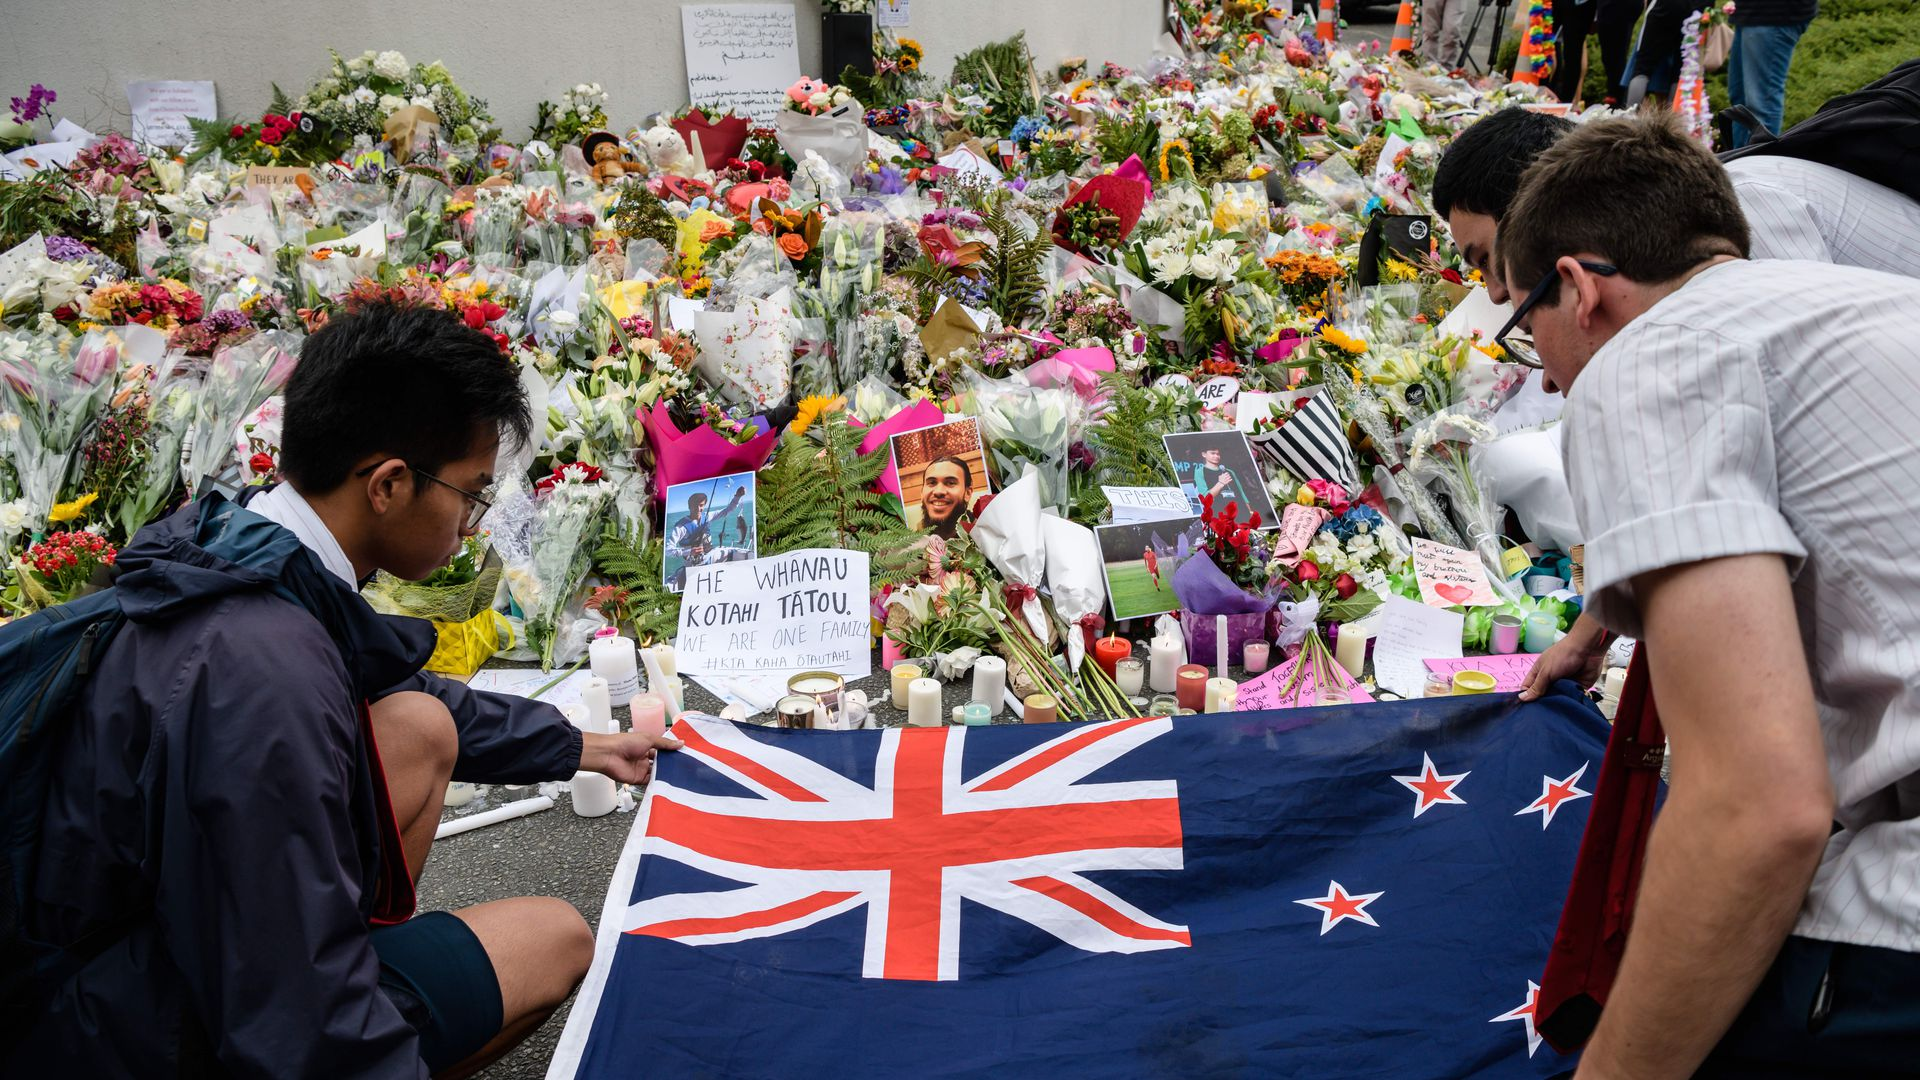 Students display the New Zealand national flag next to flowers during a vigil in Christchurch on March 18, 2019.